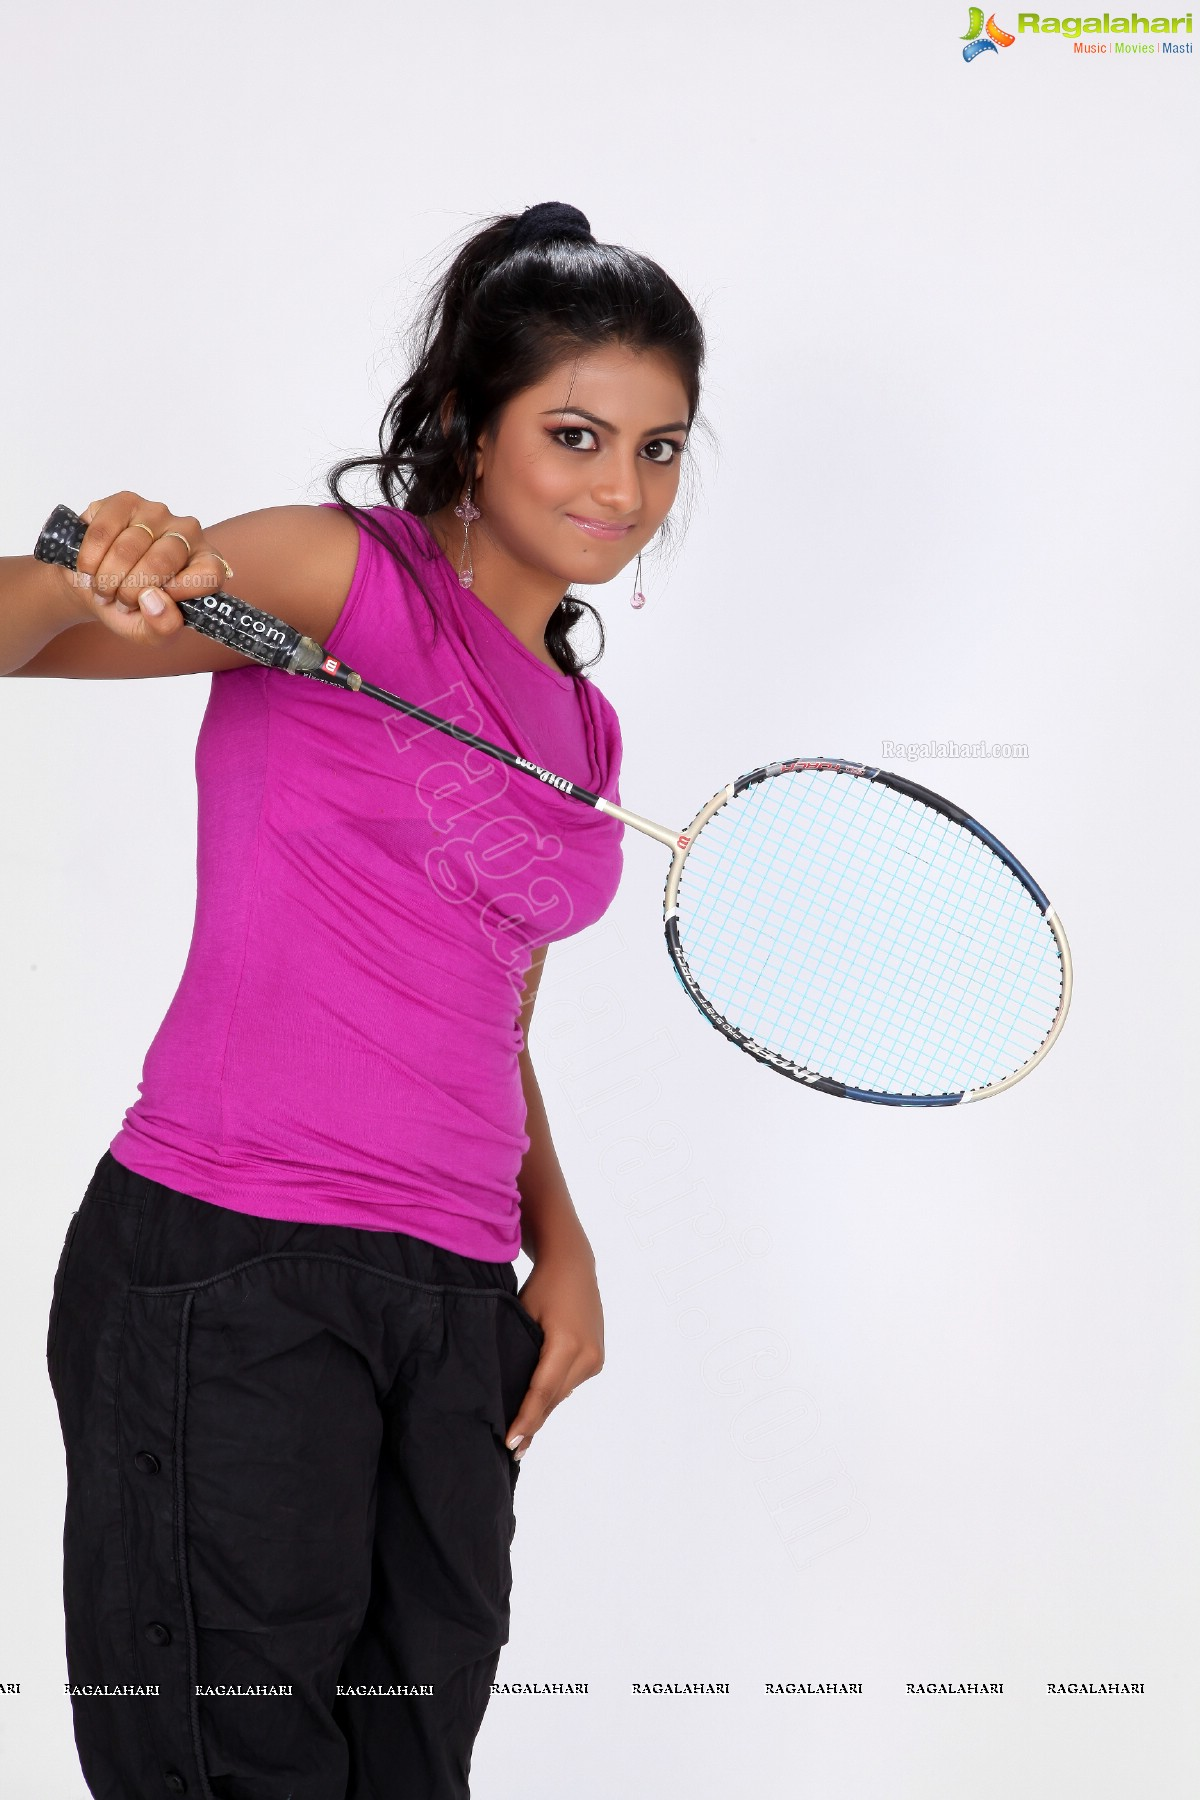 anandhi (exclusive) image 70 | tollywood heroines gallery,images